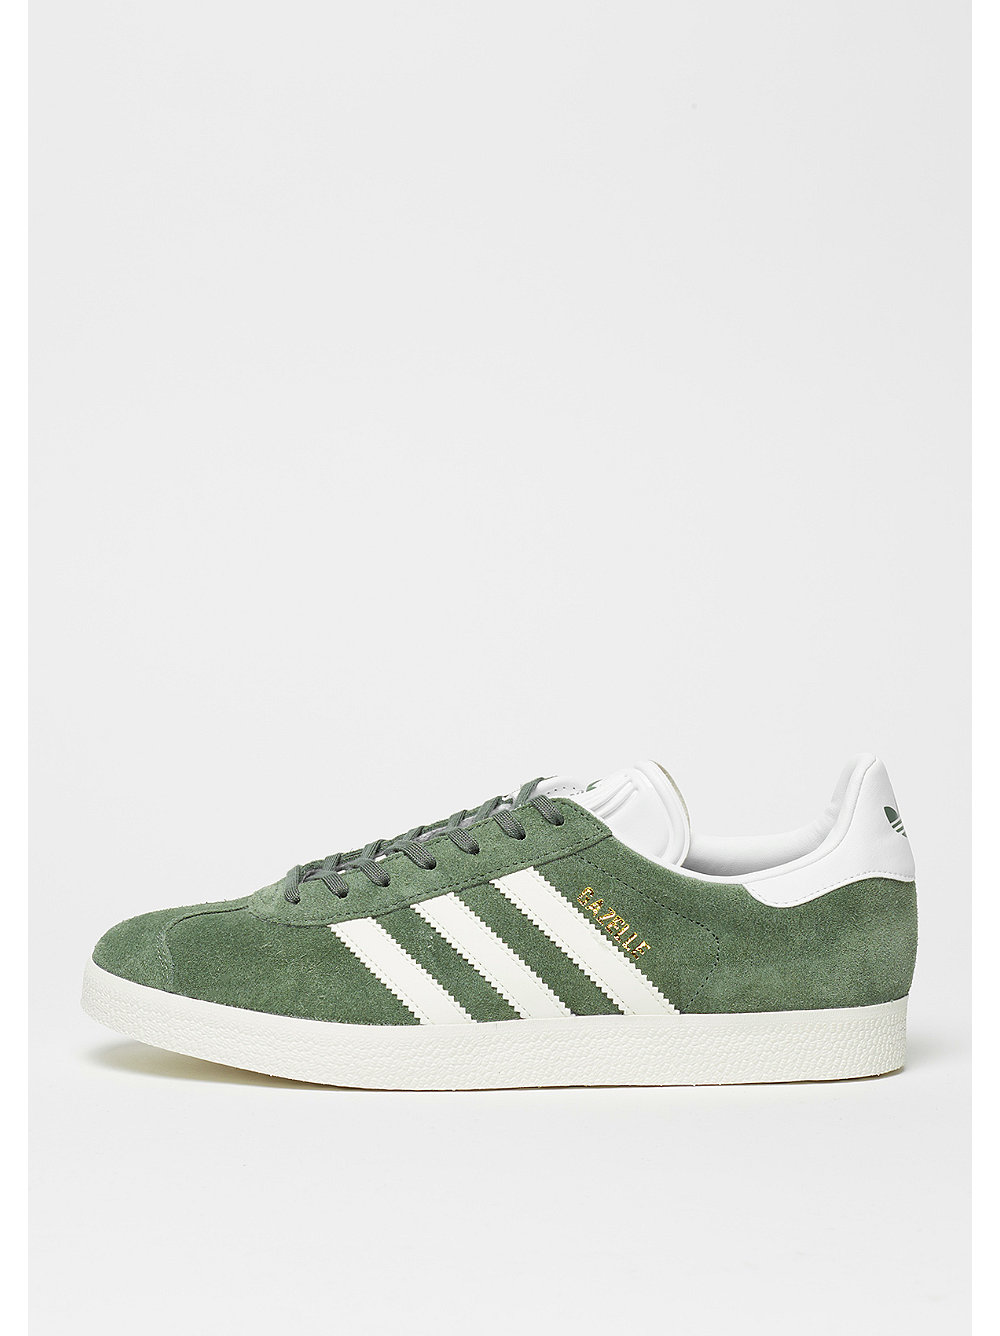 adidas Gazelle trace green-off white-white